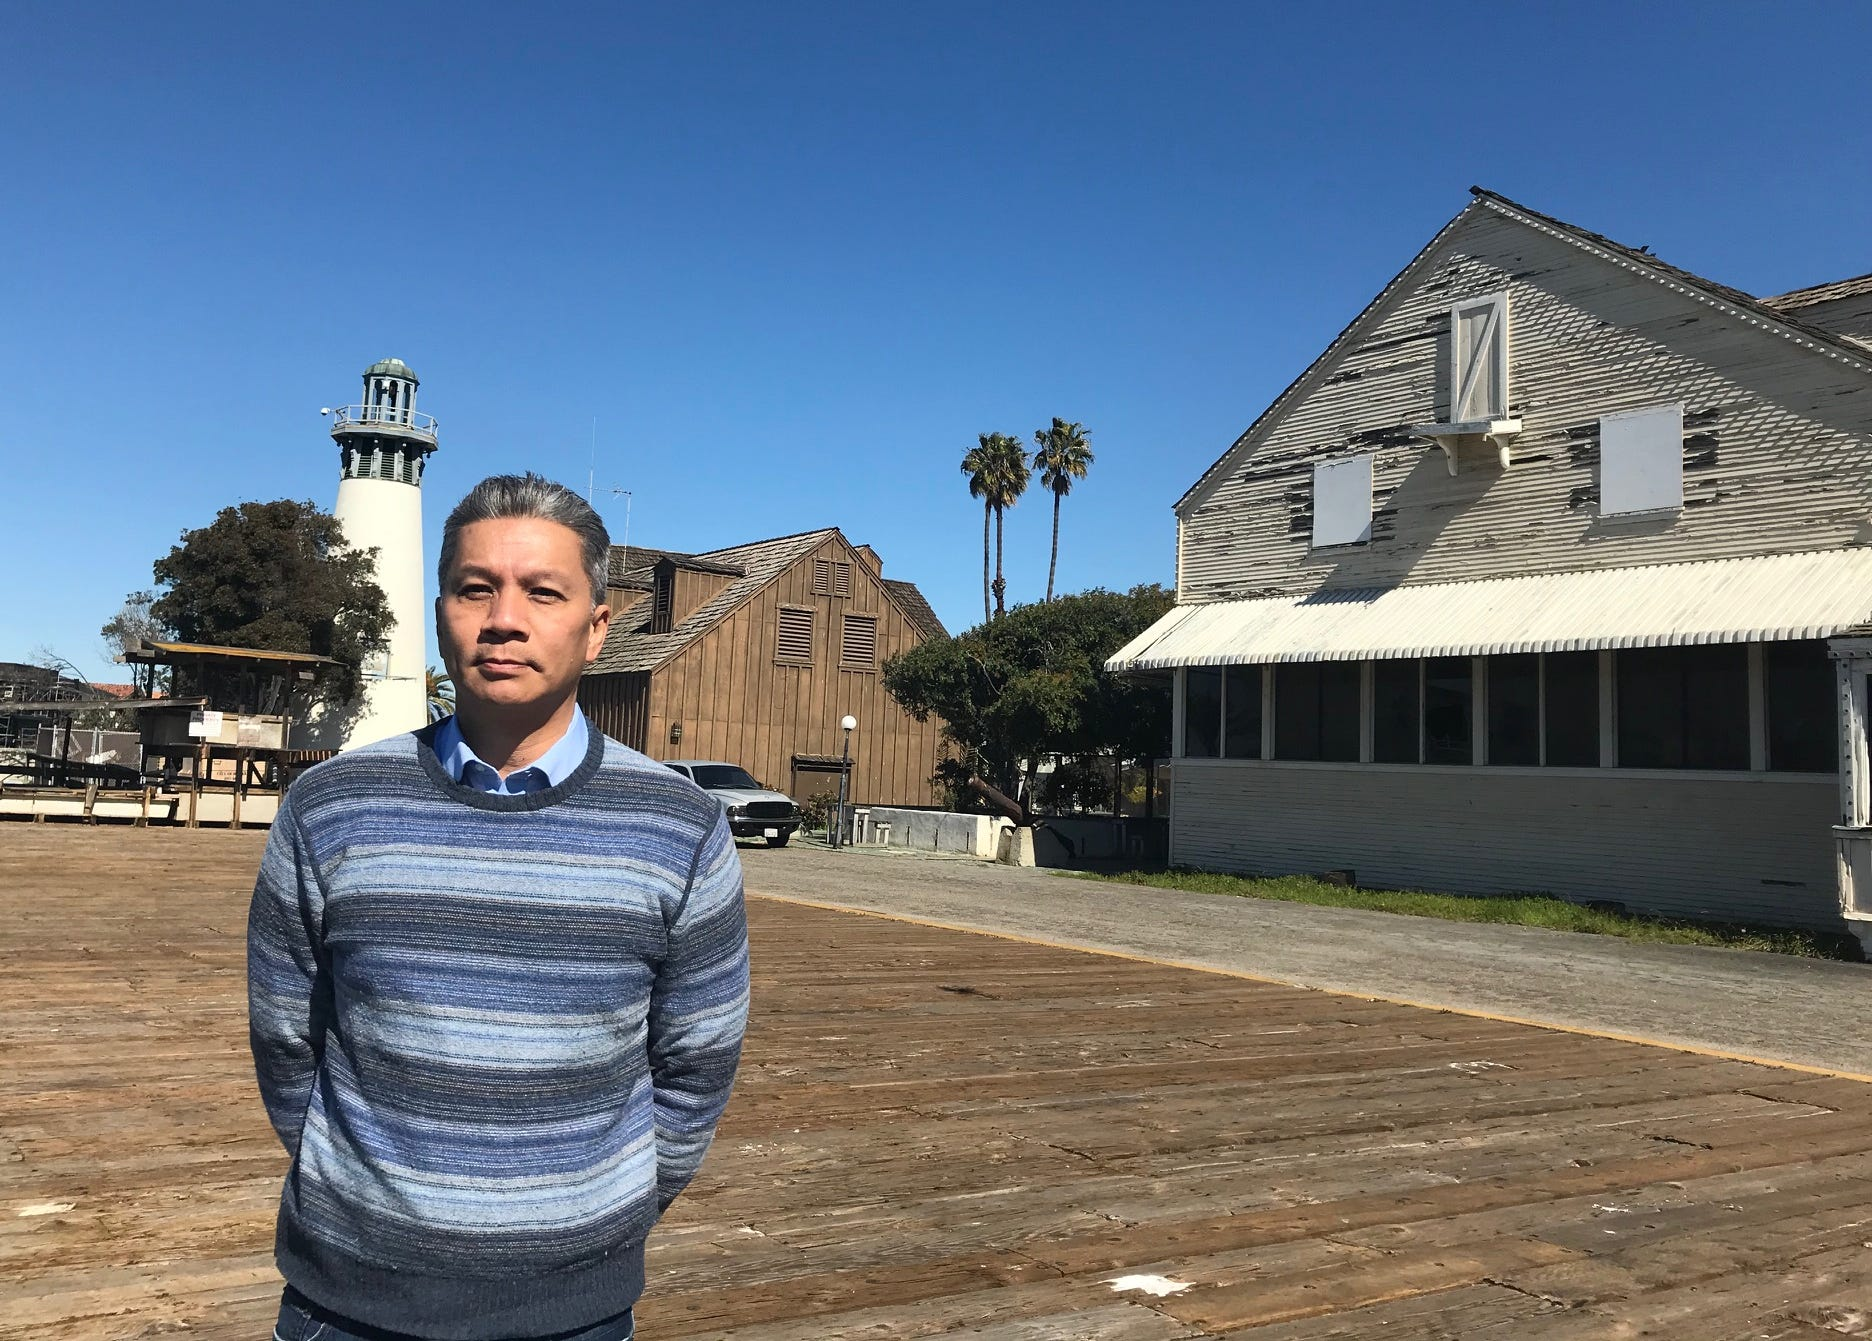 Oxnard City Manager Alex Nguyen visits Channel Islands Harbor, where a dispute has erupted between the city and Ventura County over costs to keep up parks and parking lots near the harbor.